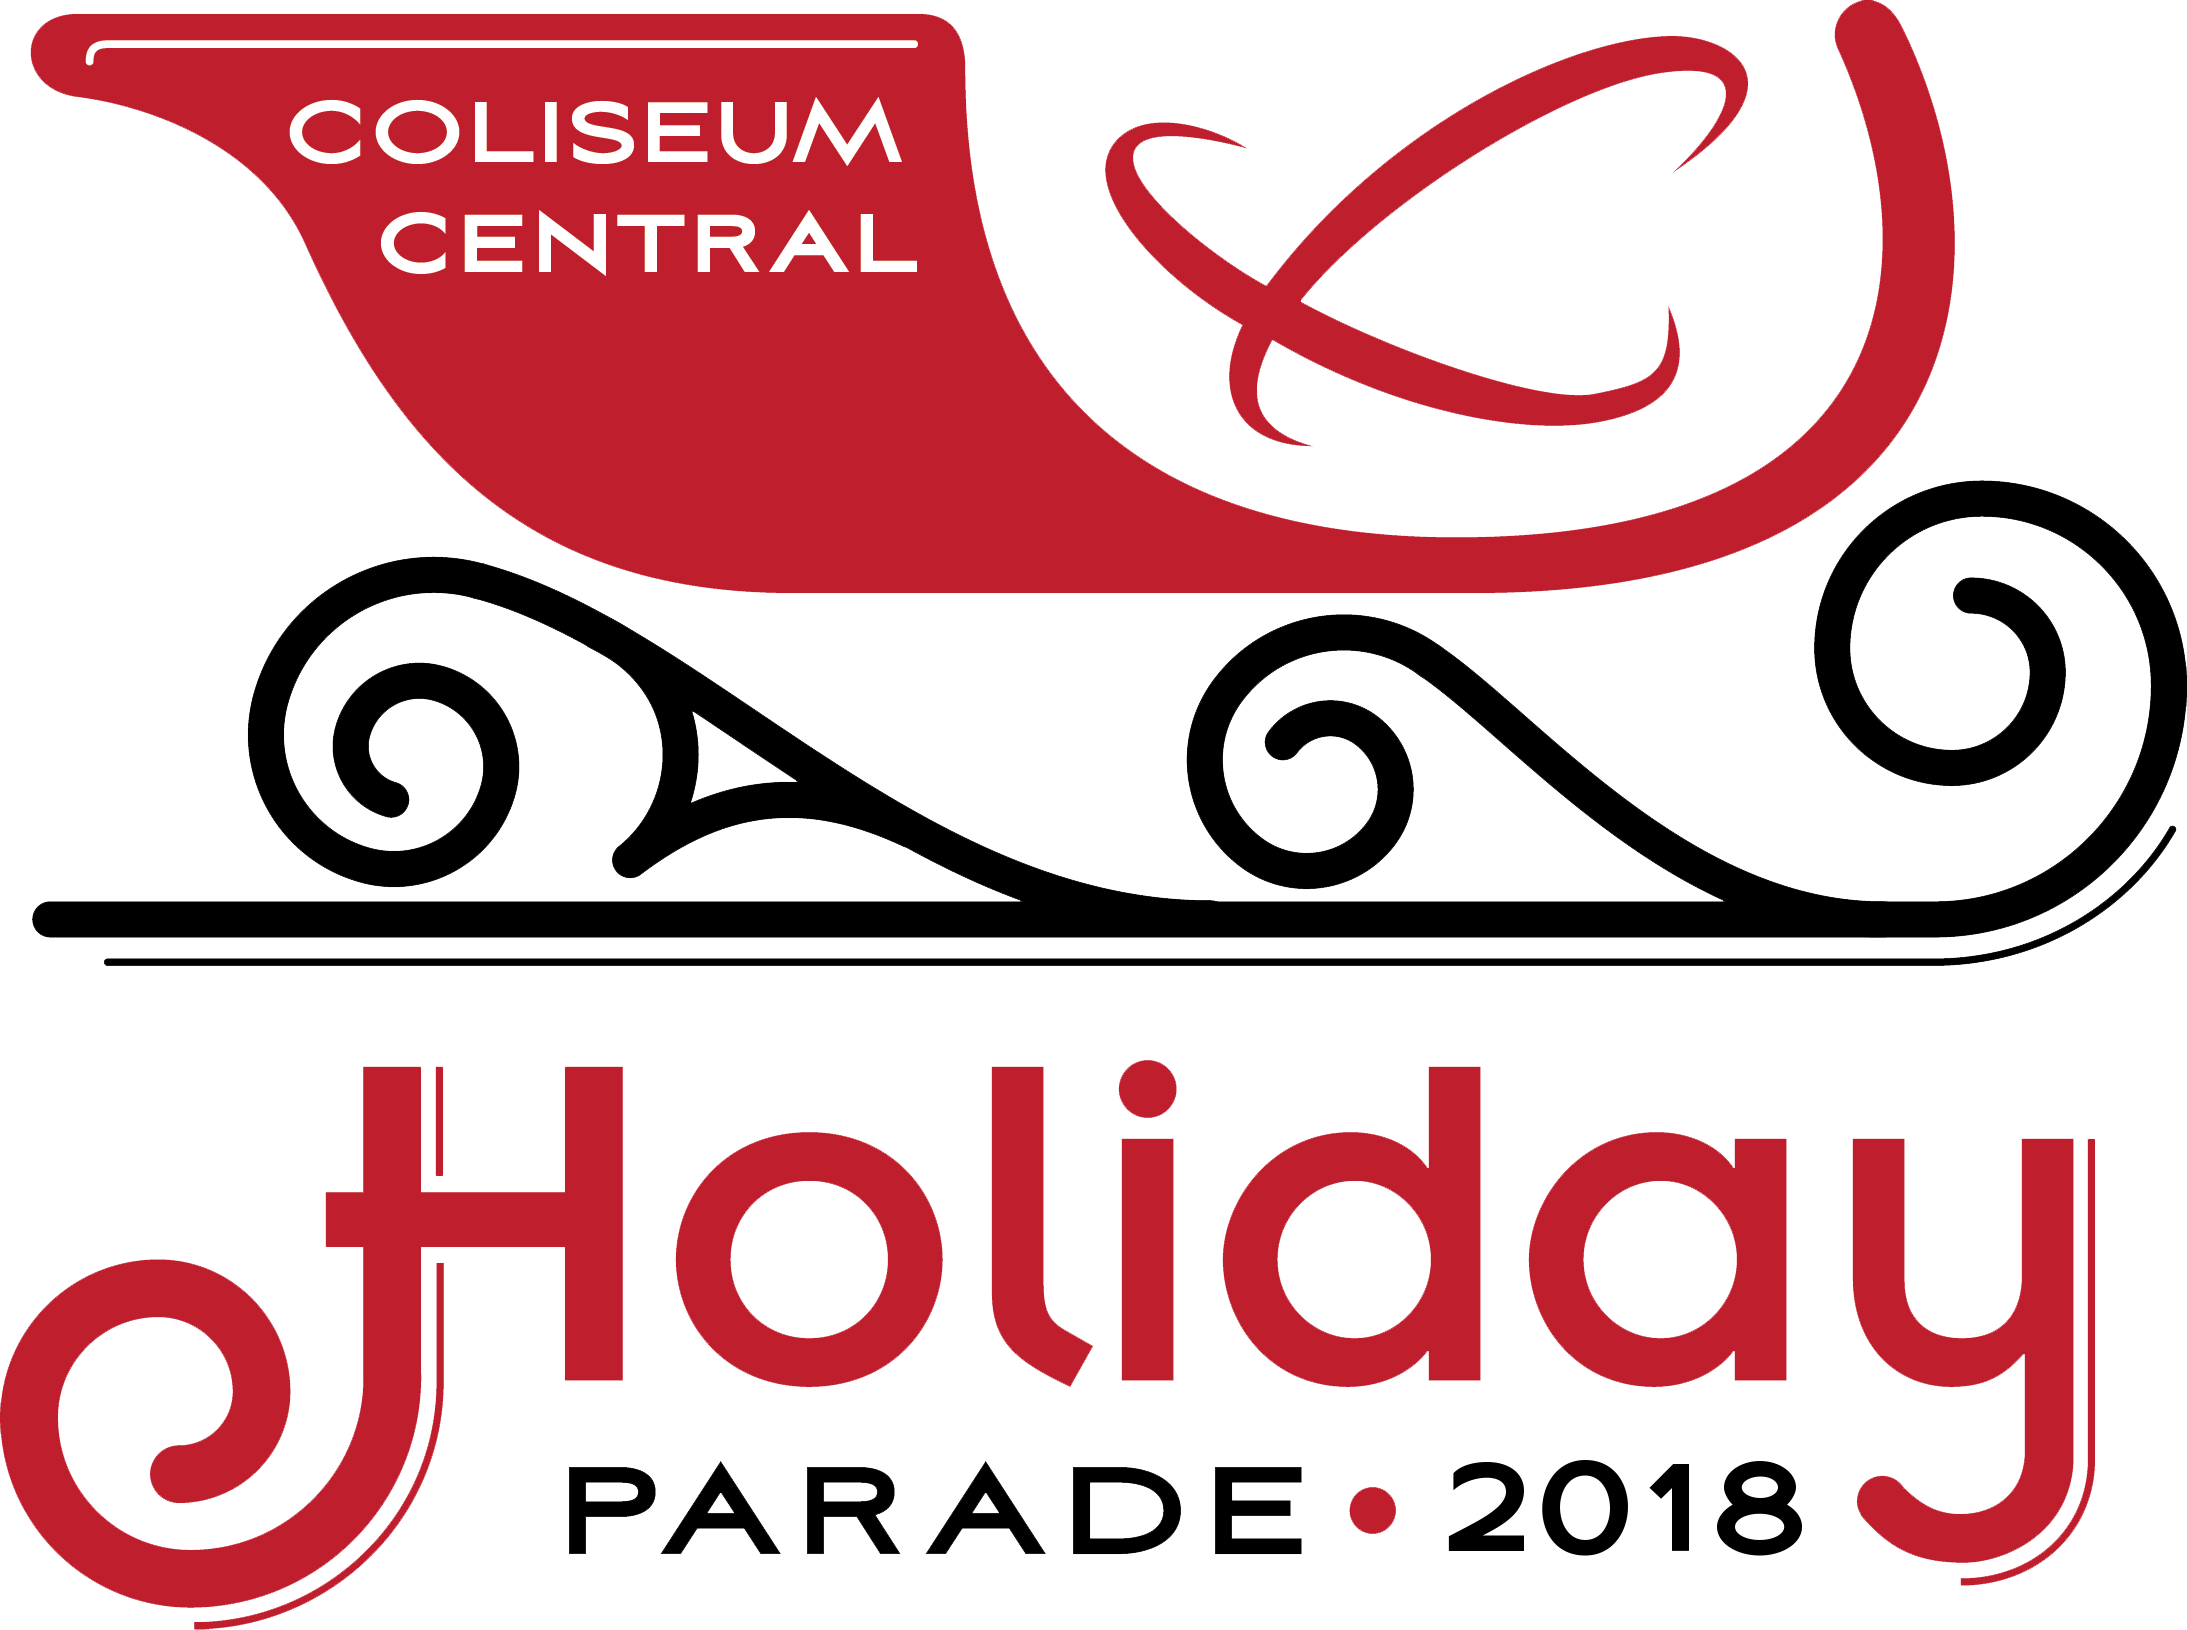 2018 Coliseum Central Holiday Parade Logo.